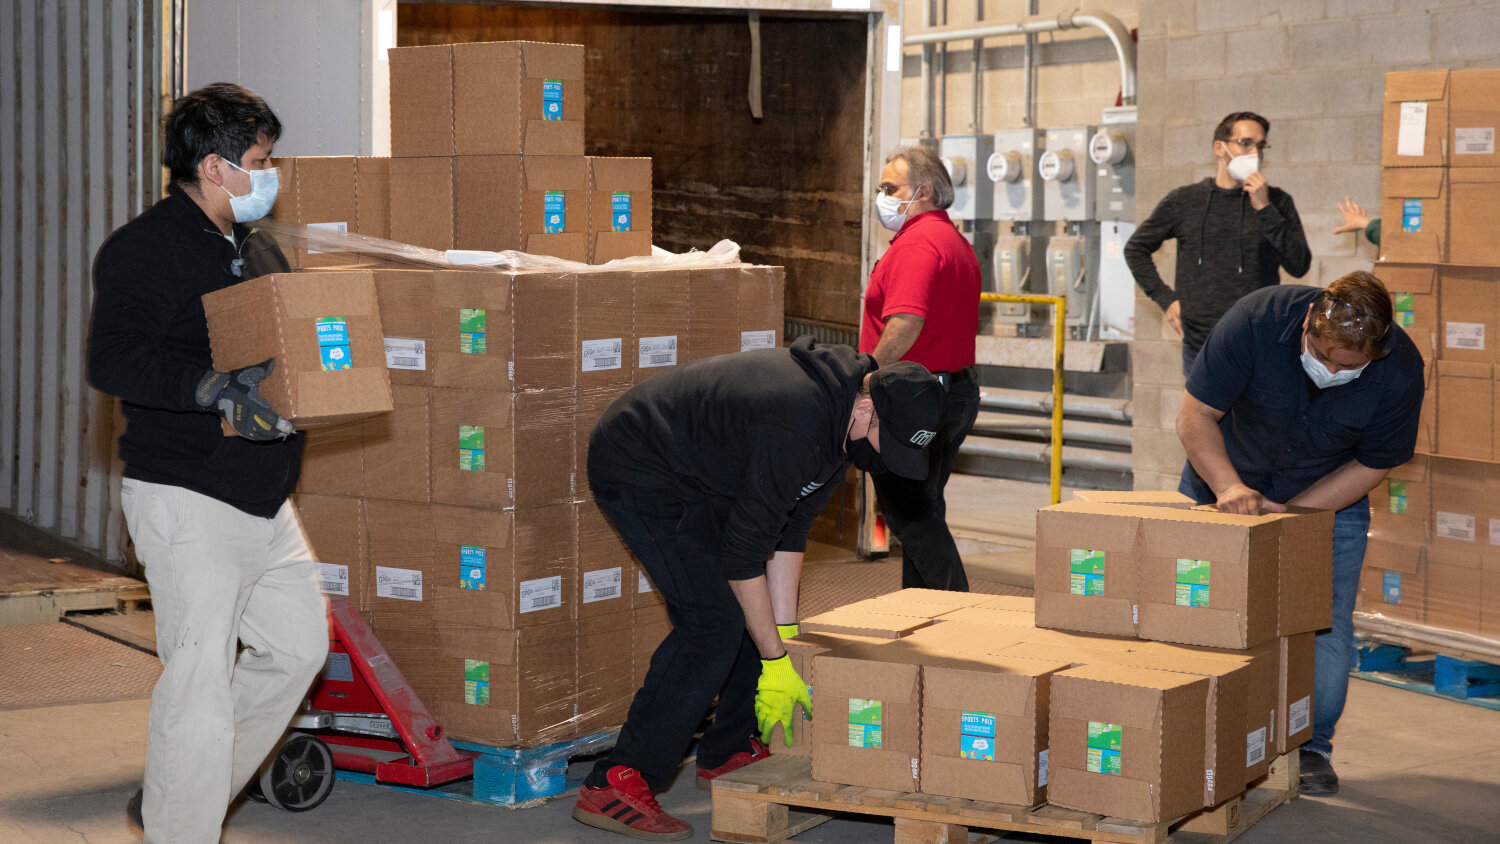 Workers load food supplies into a Mid-West Moving & Storage Vehicle. The company is one of more than 1,000 that help Move For Hunger transport needed food to food banks around the nation. (Photo: Move For Hunger)